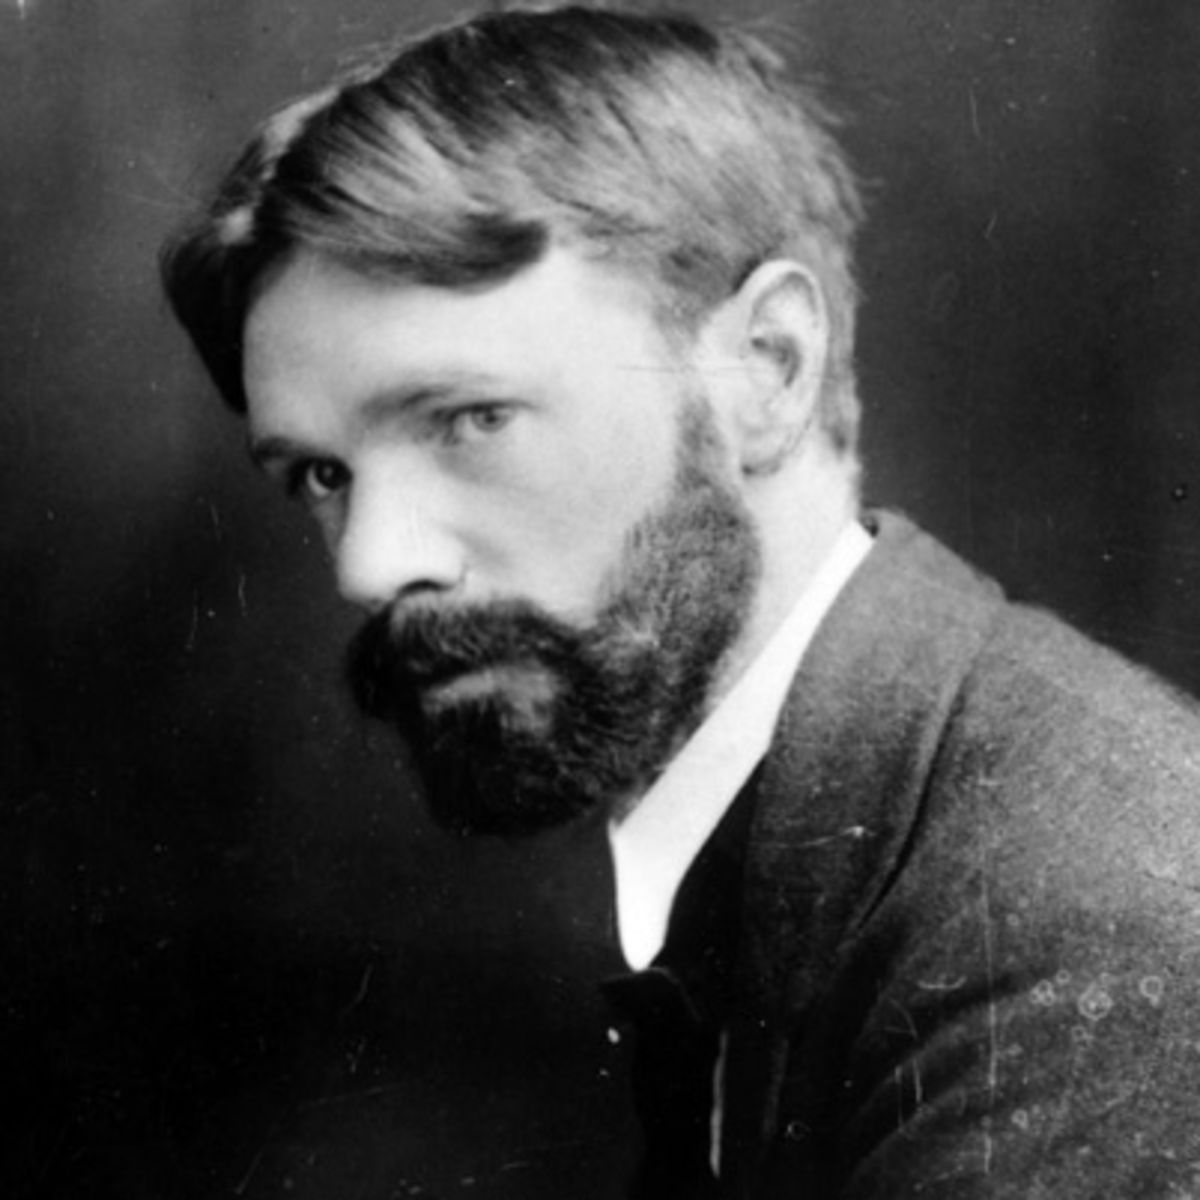 d.h lawrence essays It was dh lawrence's great misfortune that he permitted himself to be swept up in a [another rexroth essay on dh lawrence] [other rexroth essays] [rexroth.